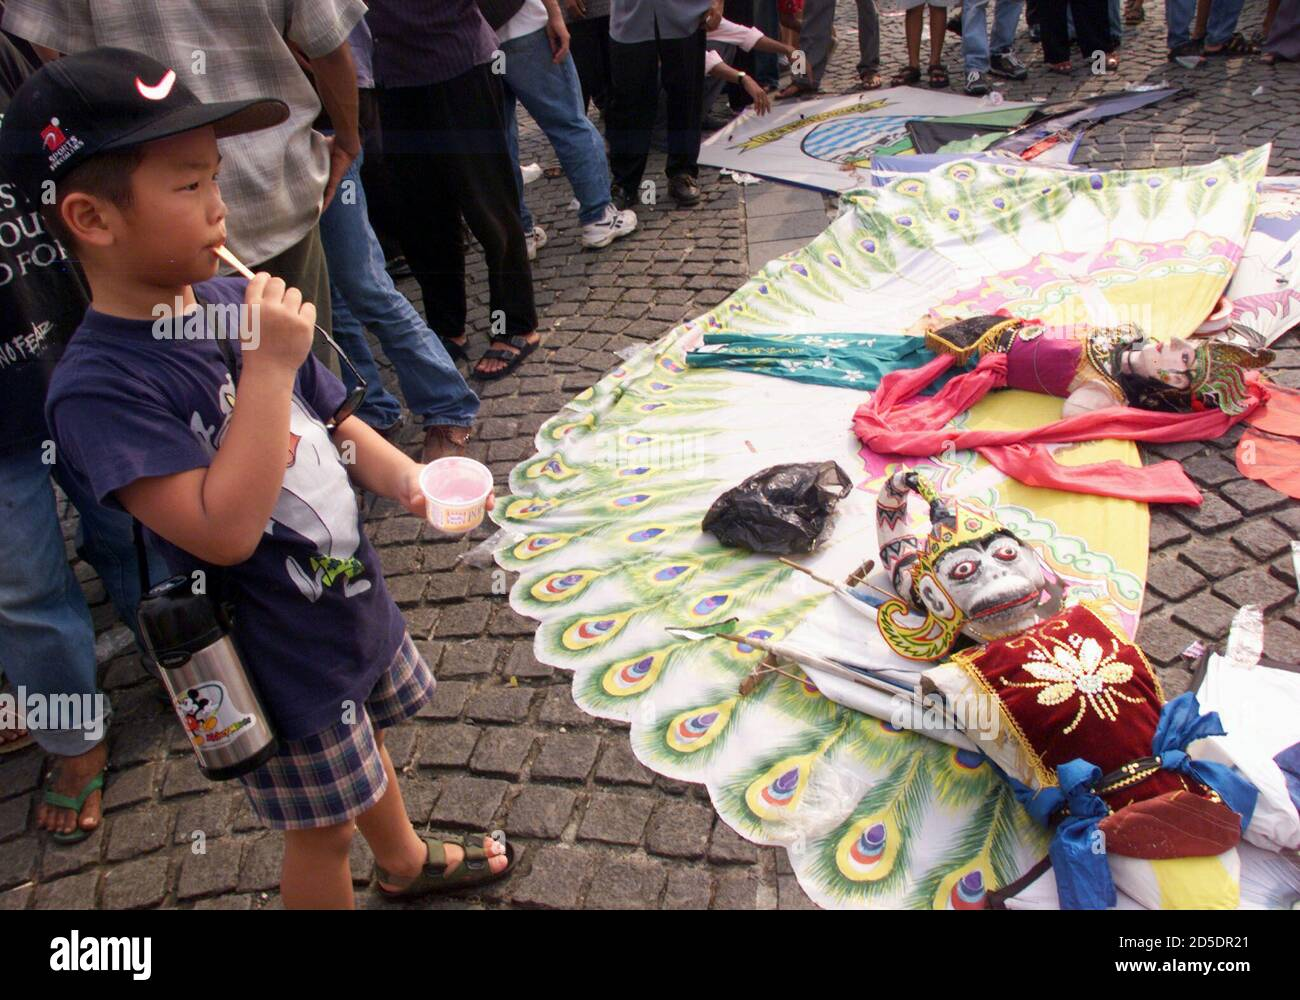 An Indonesian boy looks at traditional kites from West Javaduring an Jakarta International Kite Festival in Jakarta July 18. Jakarta is holding a two-day kite festival to celebrate the 472nd anniversary of the founding of the city.  PRI/DL Stock Photo